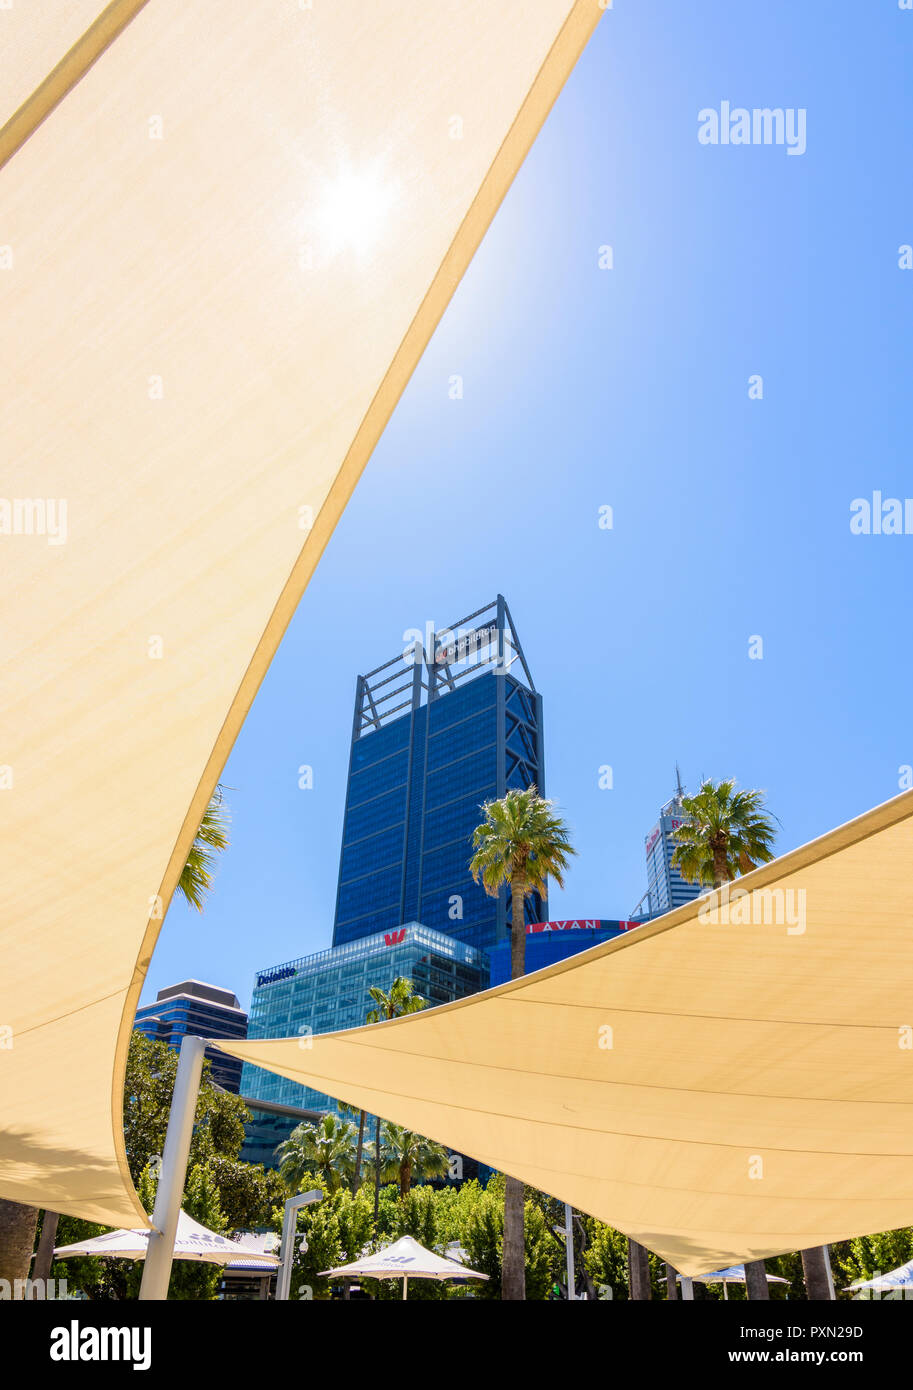 Shade sails above the mini water park at Elizabeth Quay, Perth, Western Australia - Stock Image